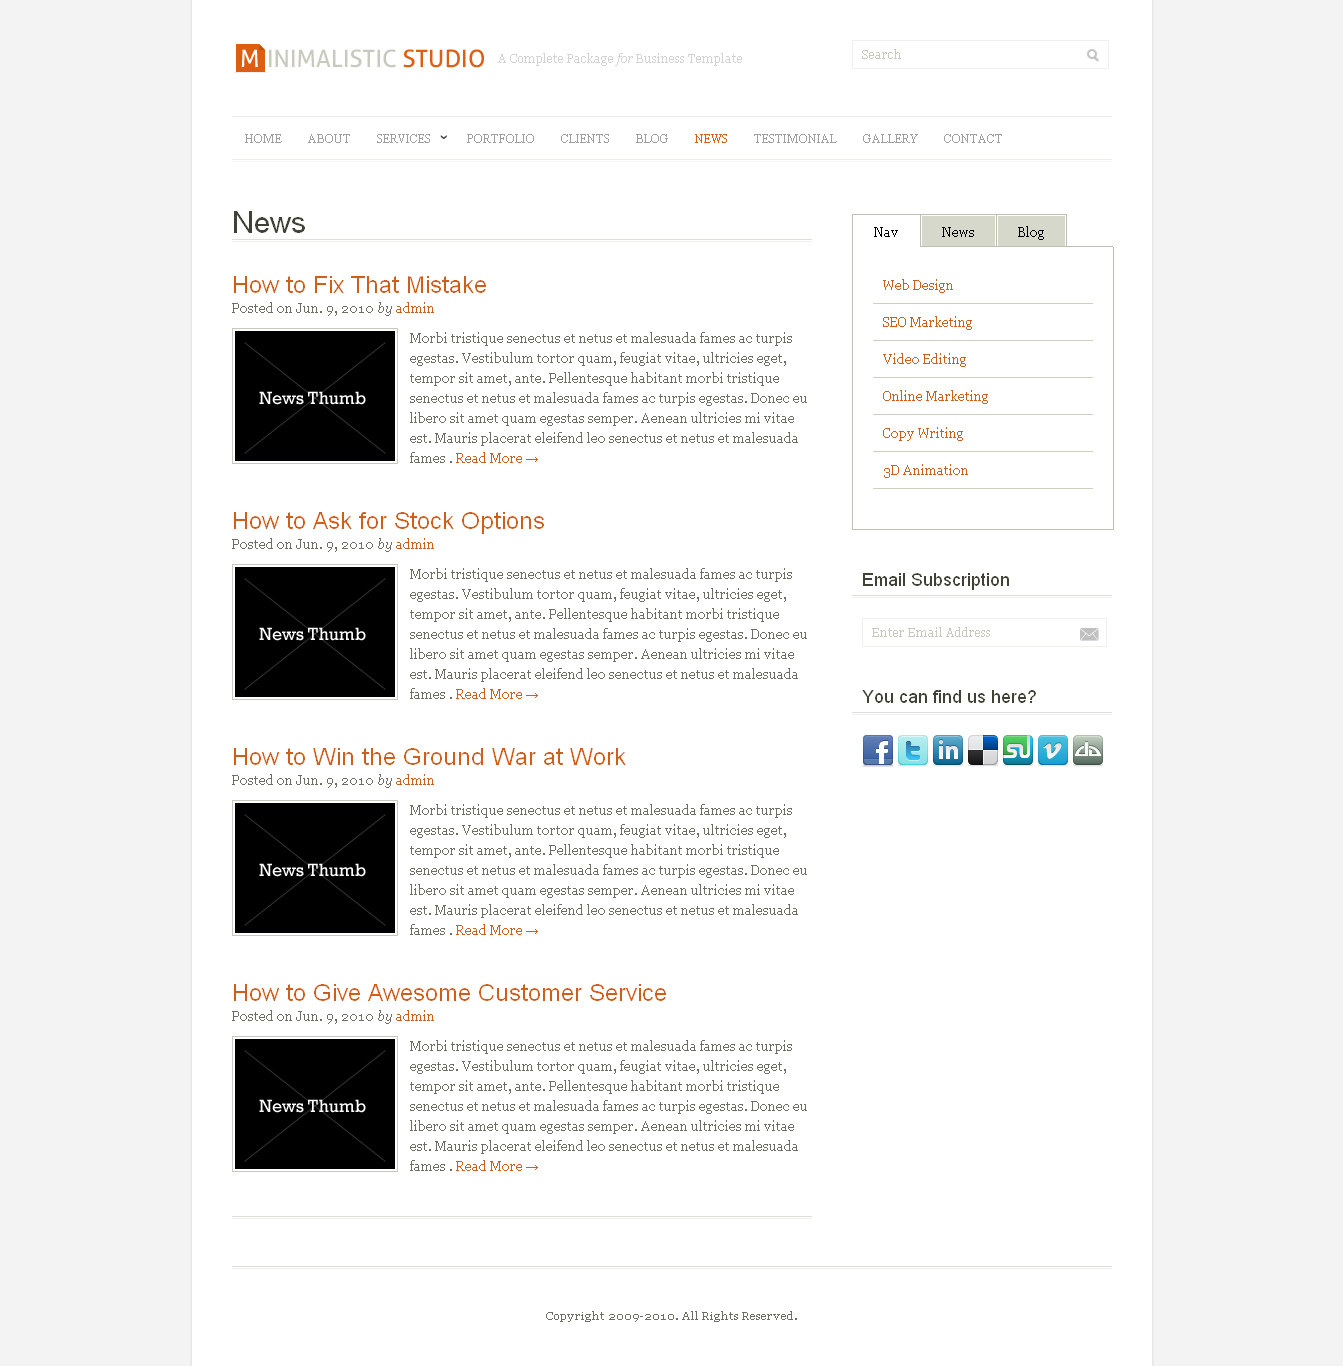 Minimalistic Studio - Premium Wordpress Theme